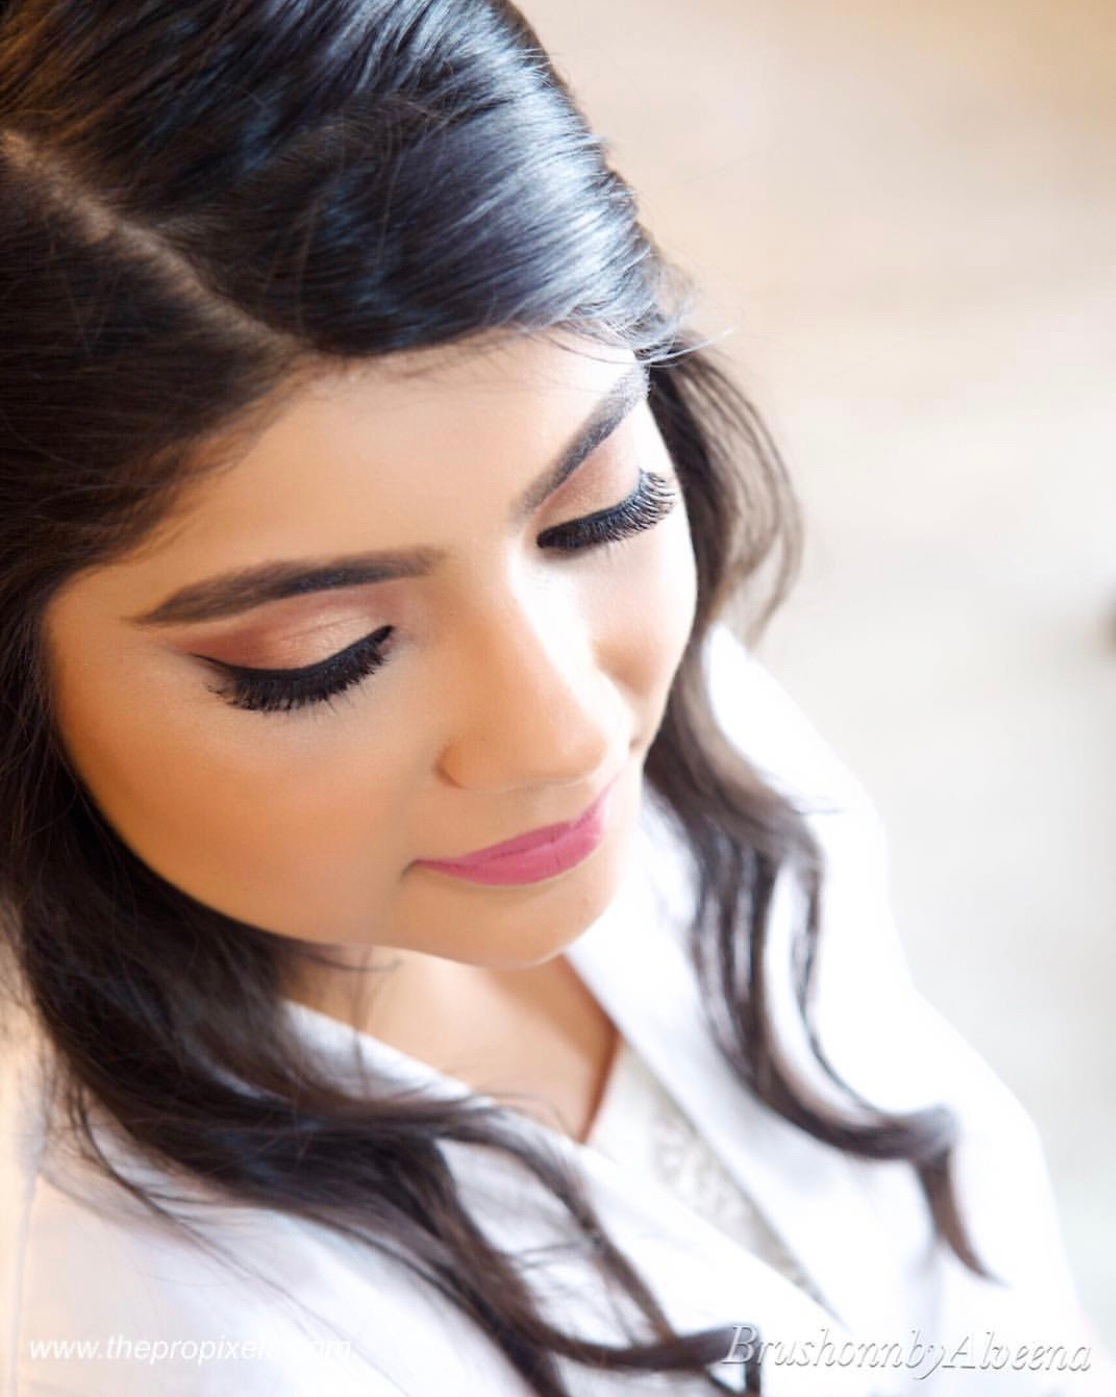 BrushOnn by Alveena Indian Wedding Makeup Artist Dallas